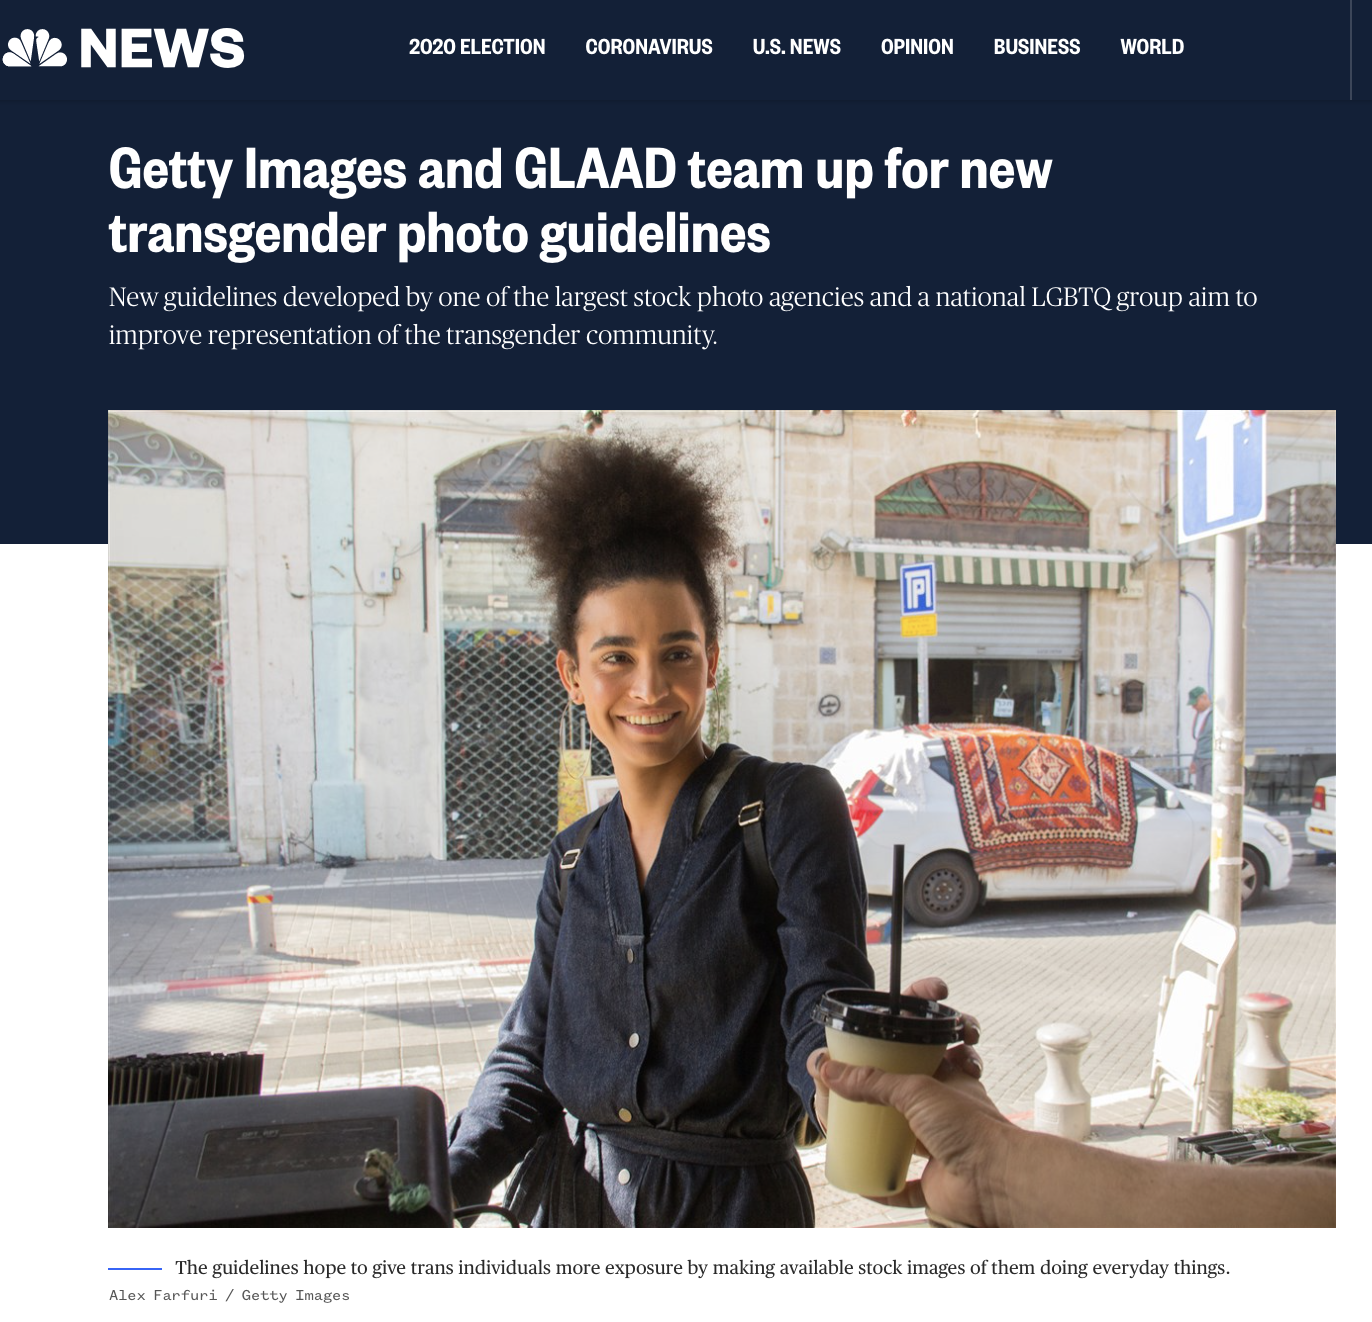 Getty Images launches global transgender contributor guidelines